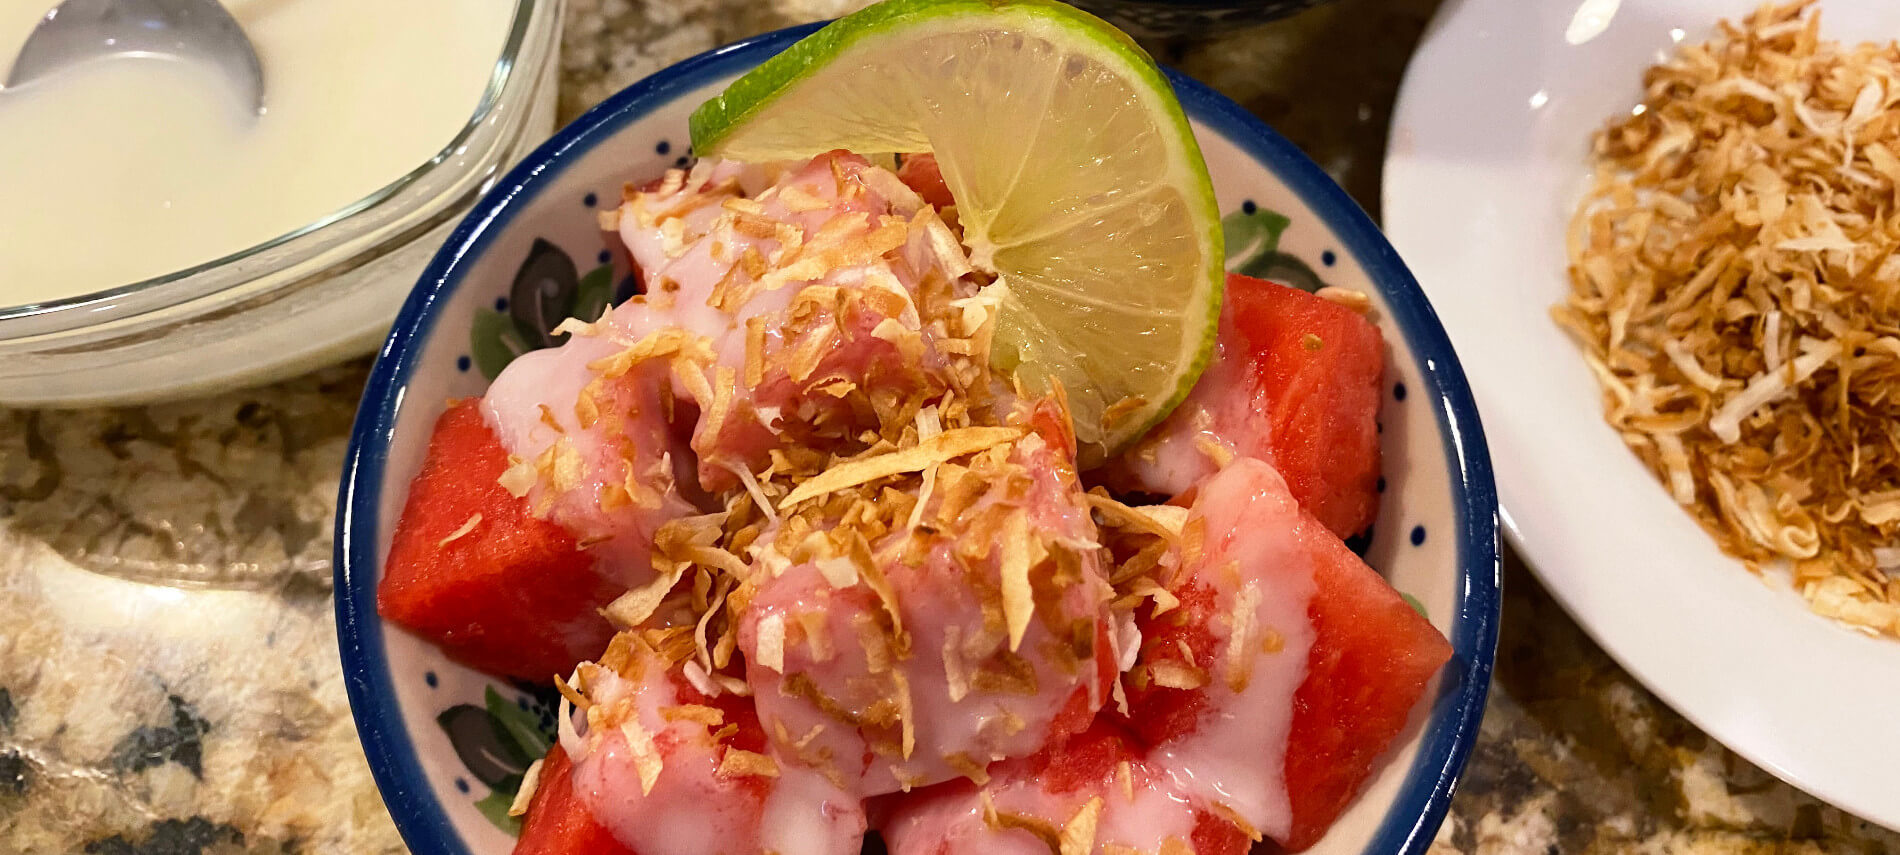 cubes of watermelon with a white coconut cream and golden brown coconut pieces, and a slice of lime